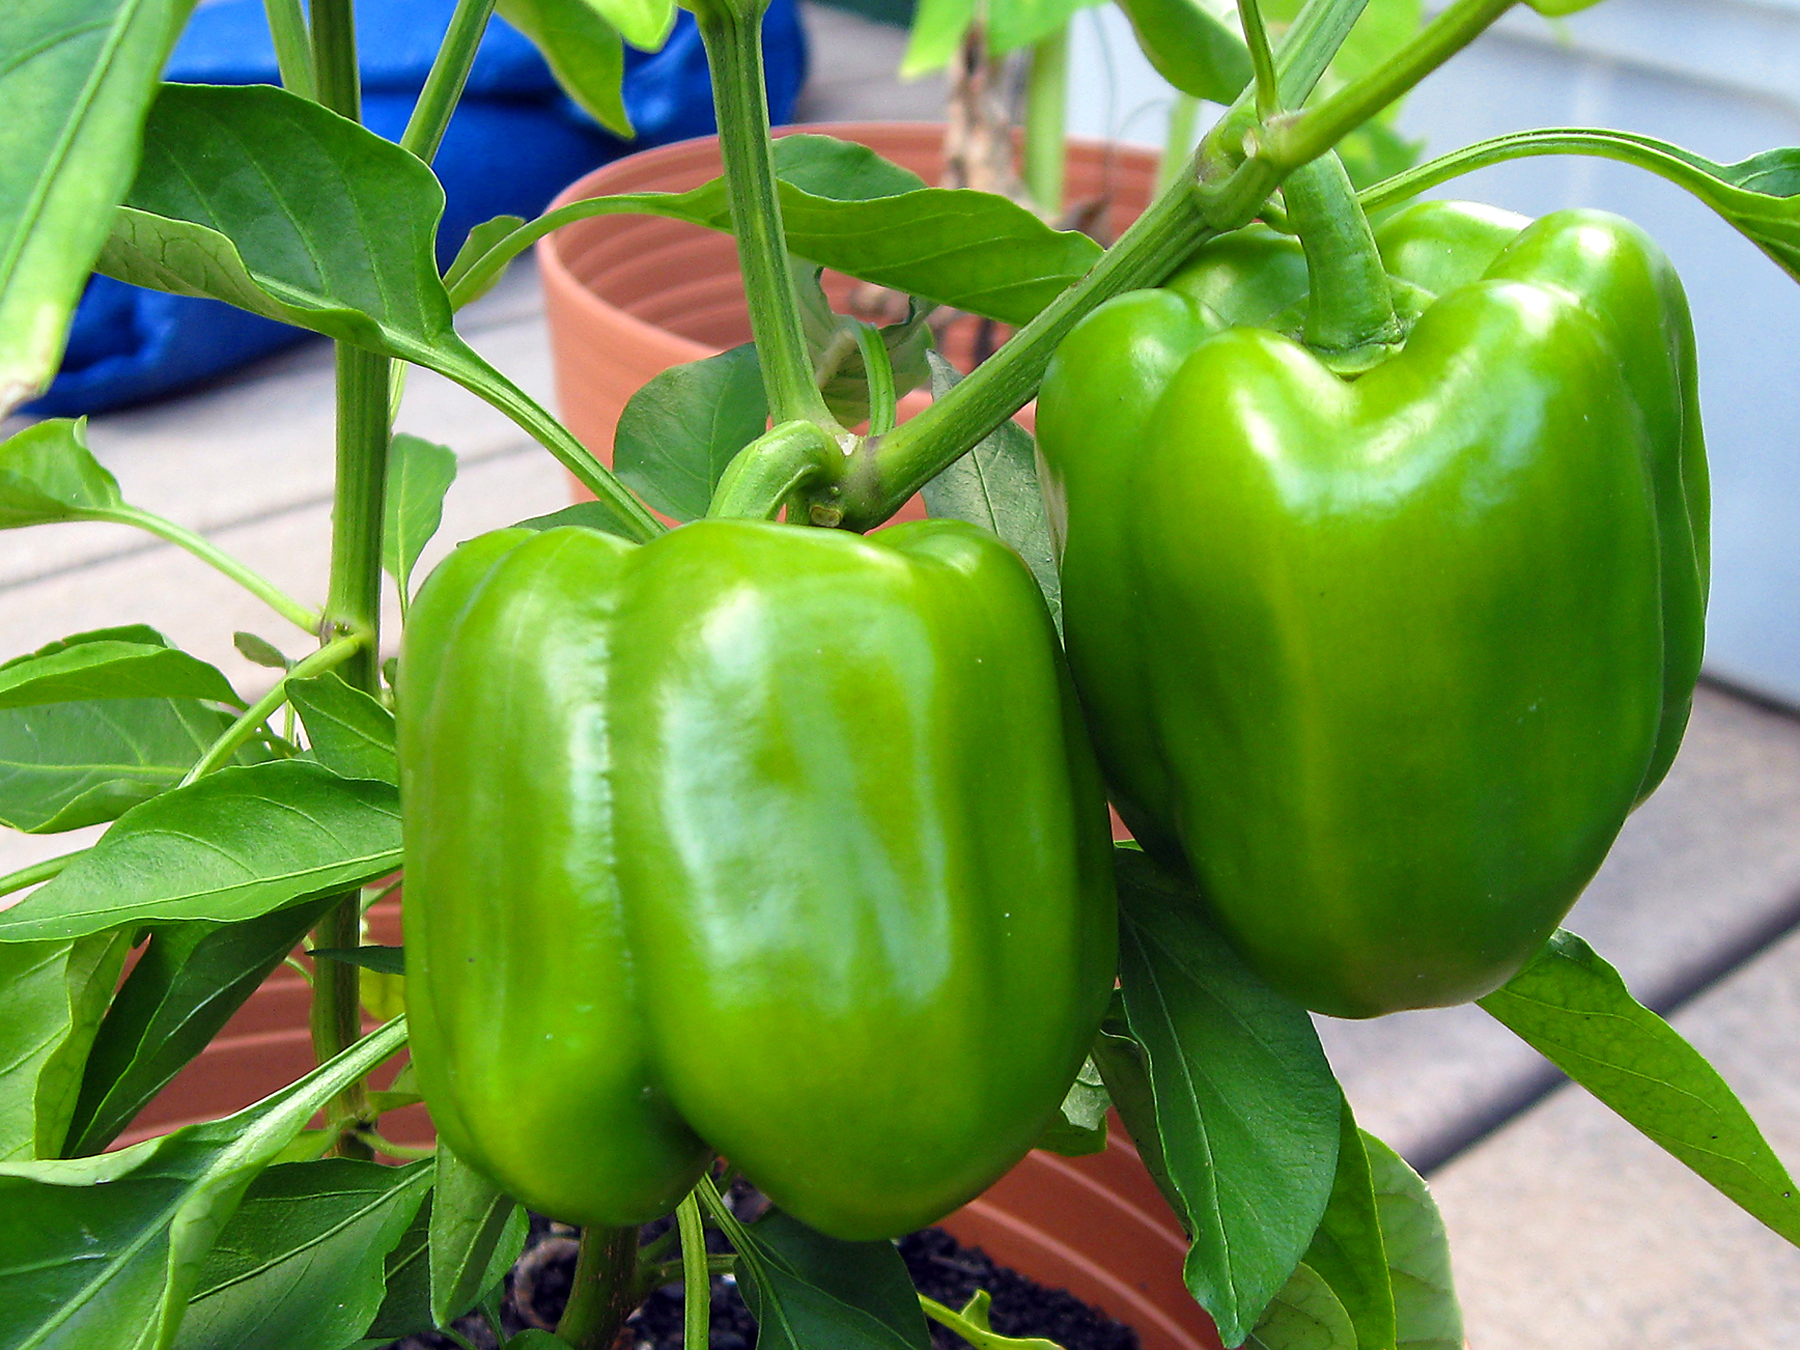 Bell peppers growing in pot